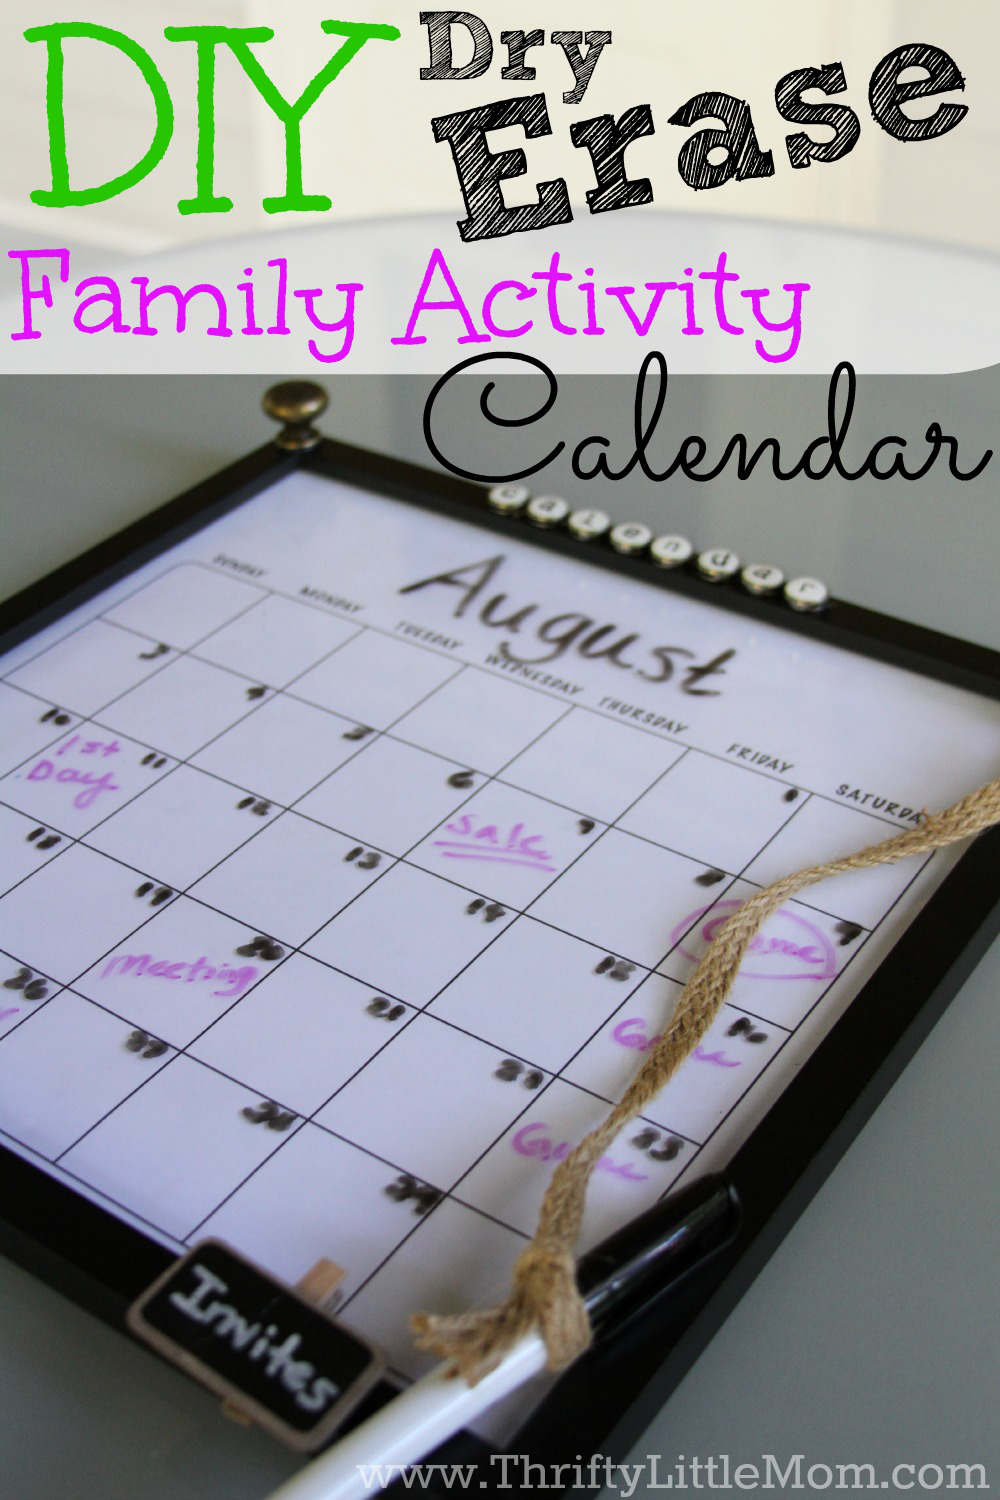 Diy dry erase family activity calendar thrifty little mom diy dry erase family activity calendar create a place to keep all your family schedules solutioingenieria Image collections